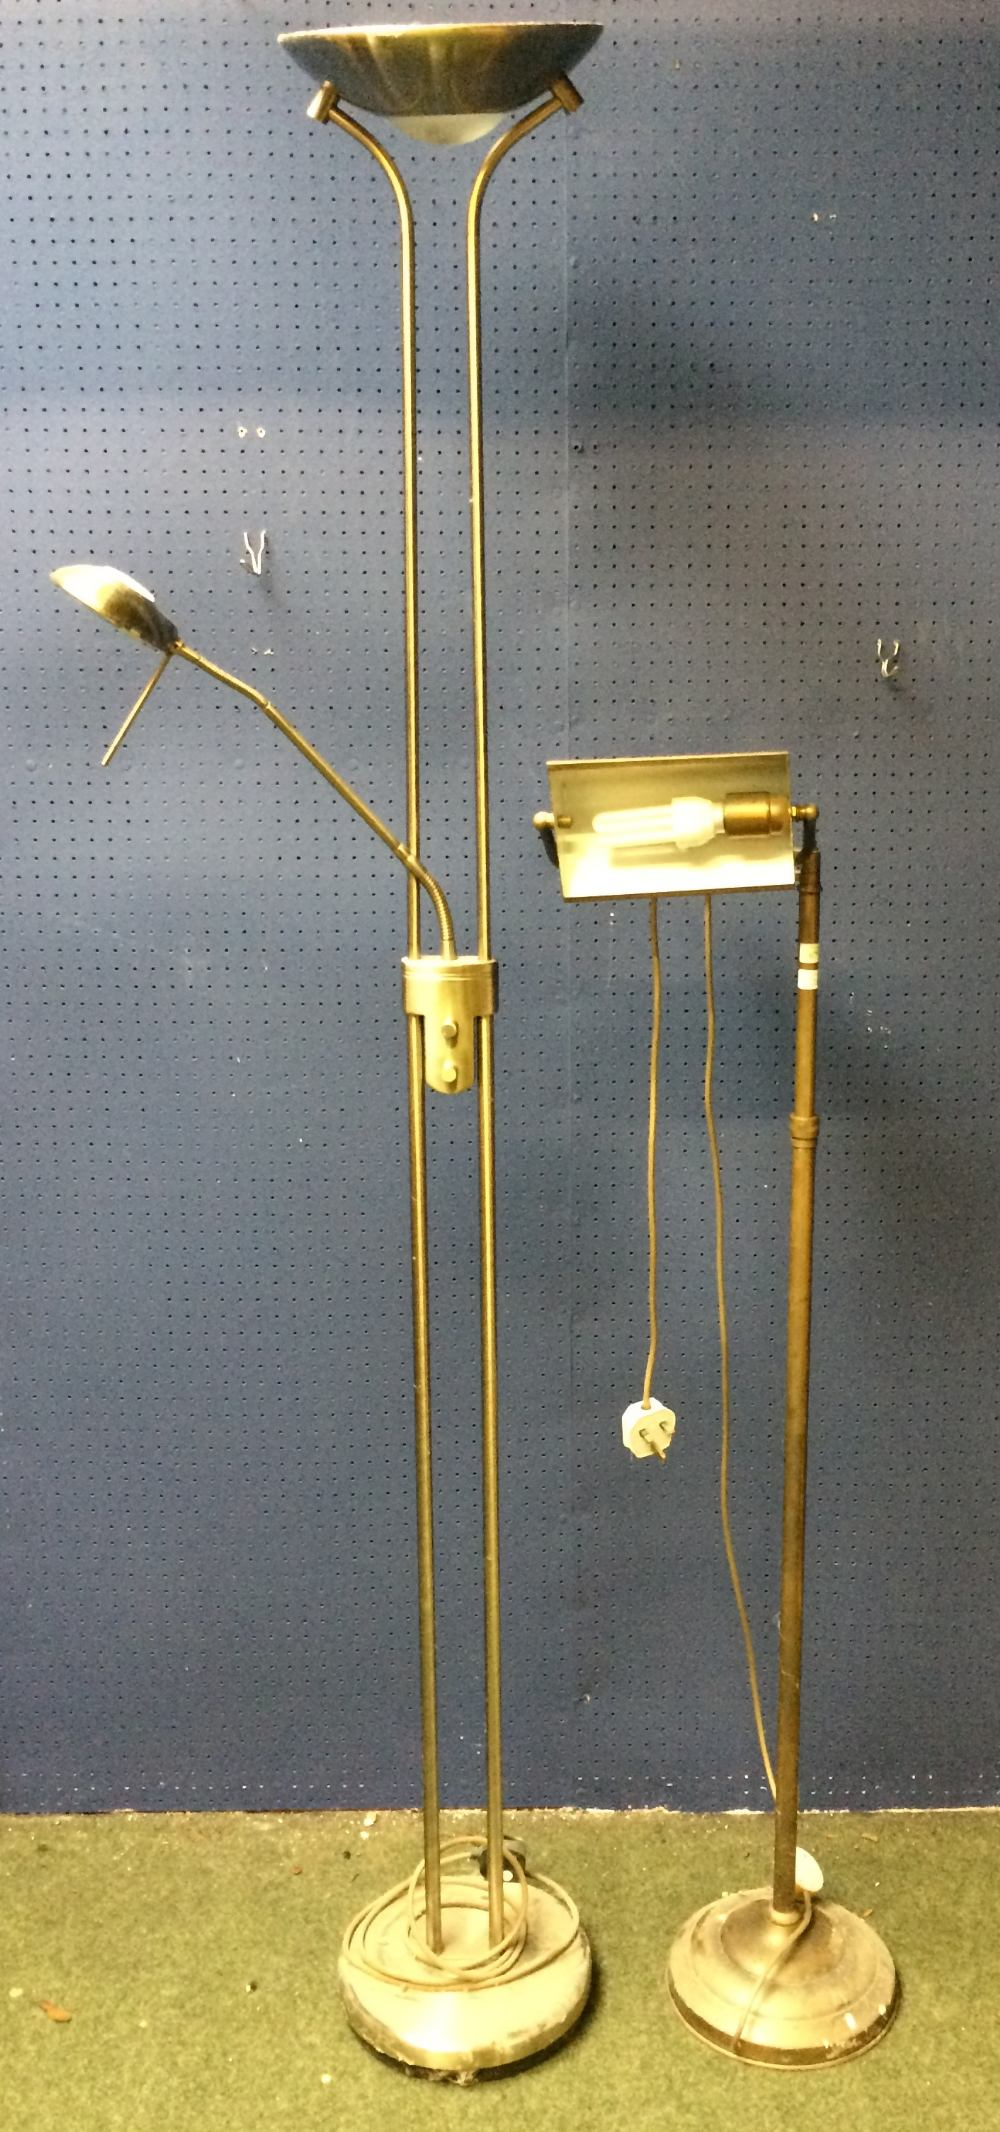 Lot 28 - General household clearance: 2 floor standing reading lamps